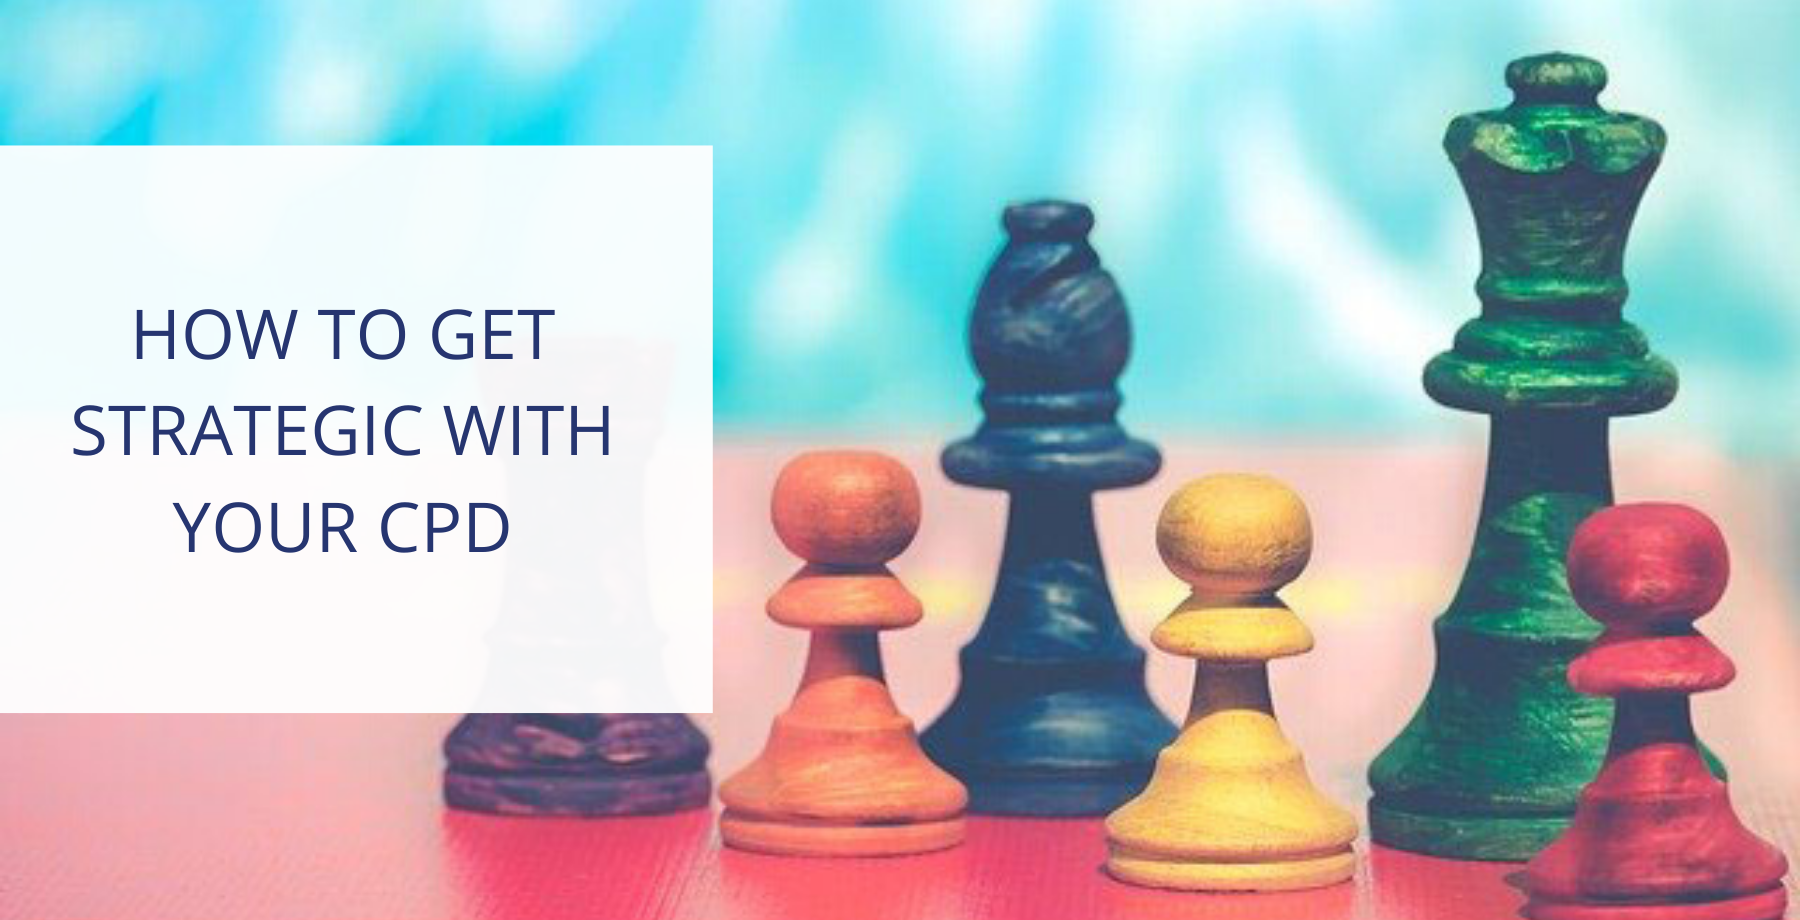 Tips to think strategically about legal CPD